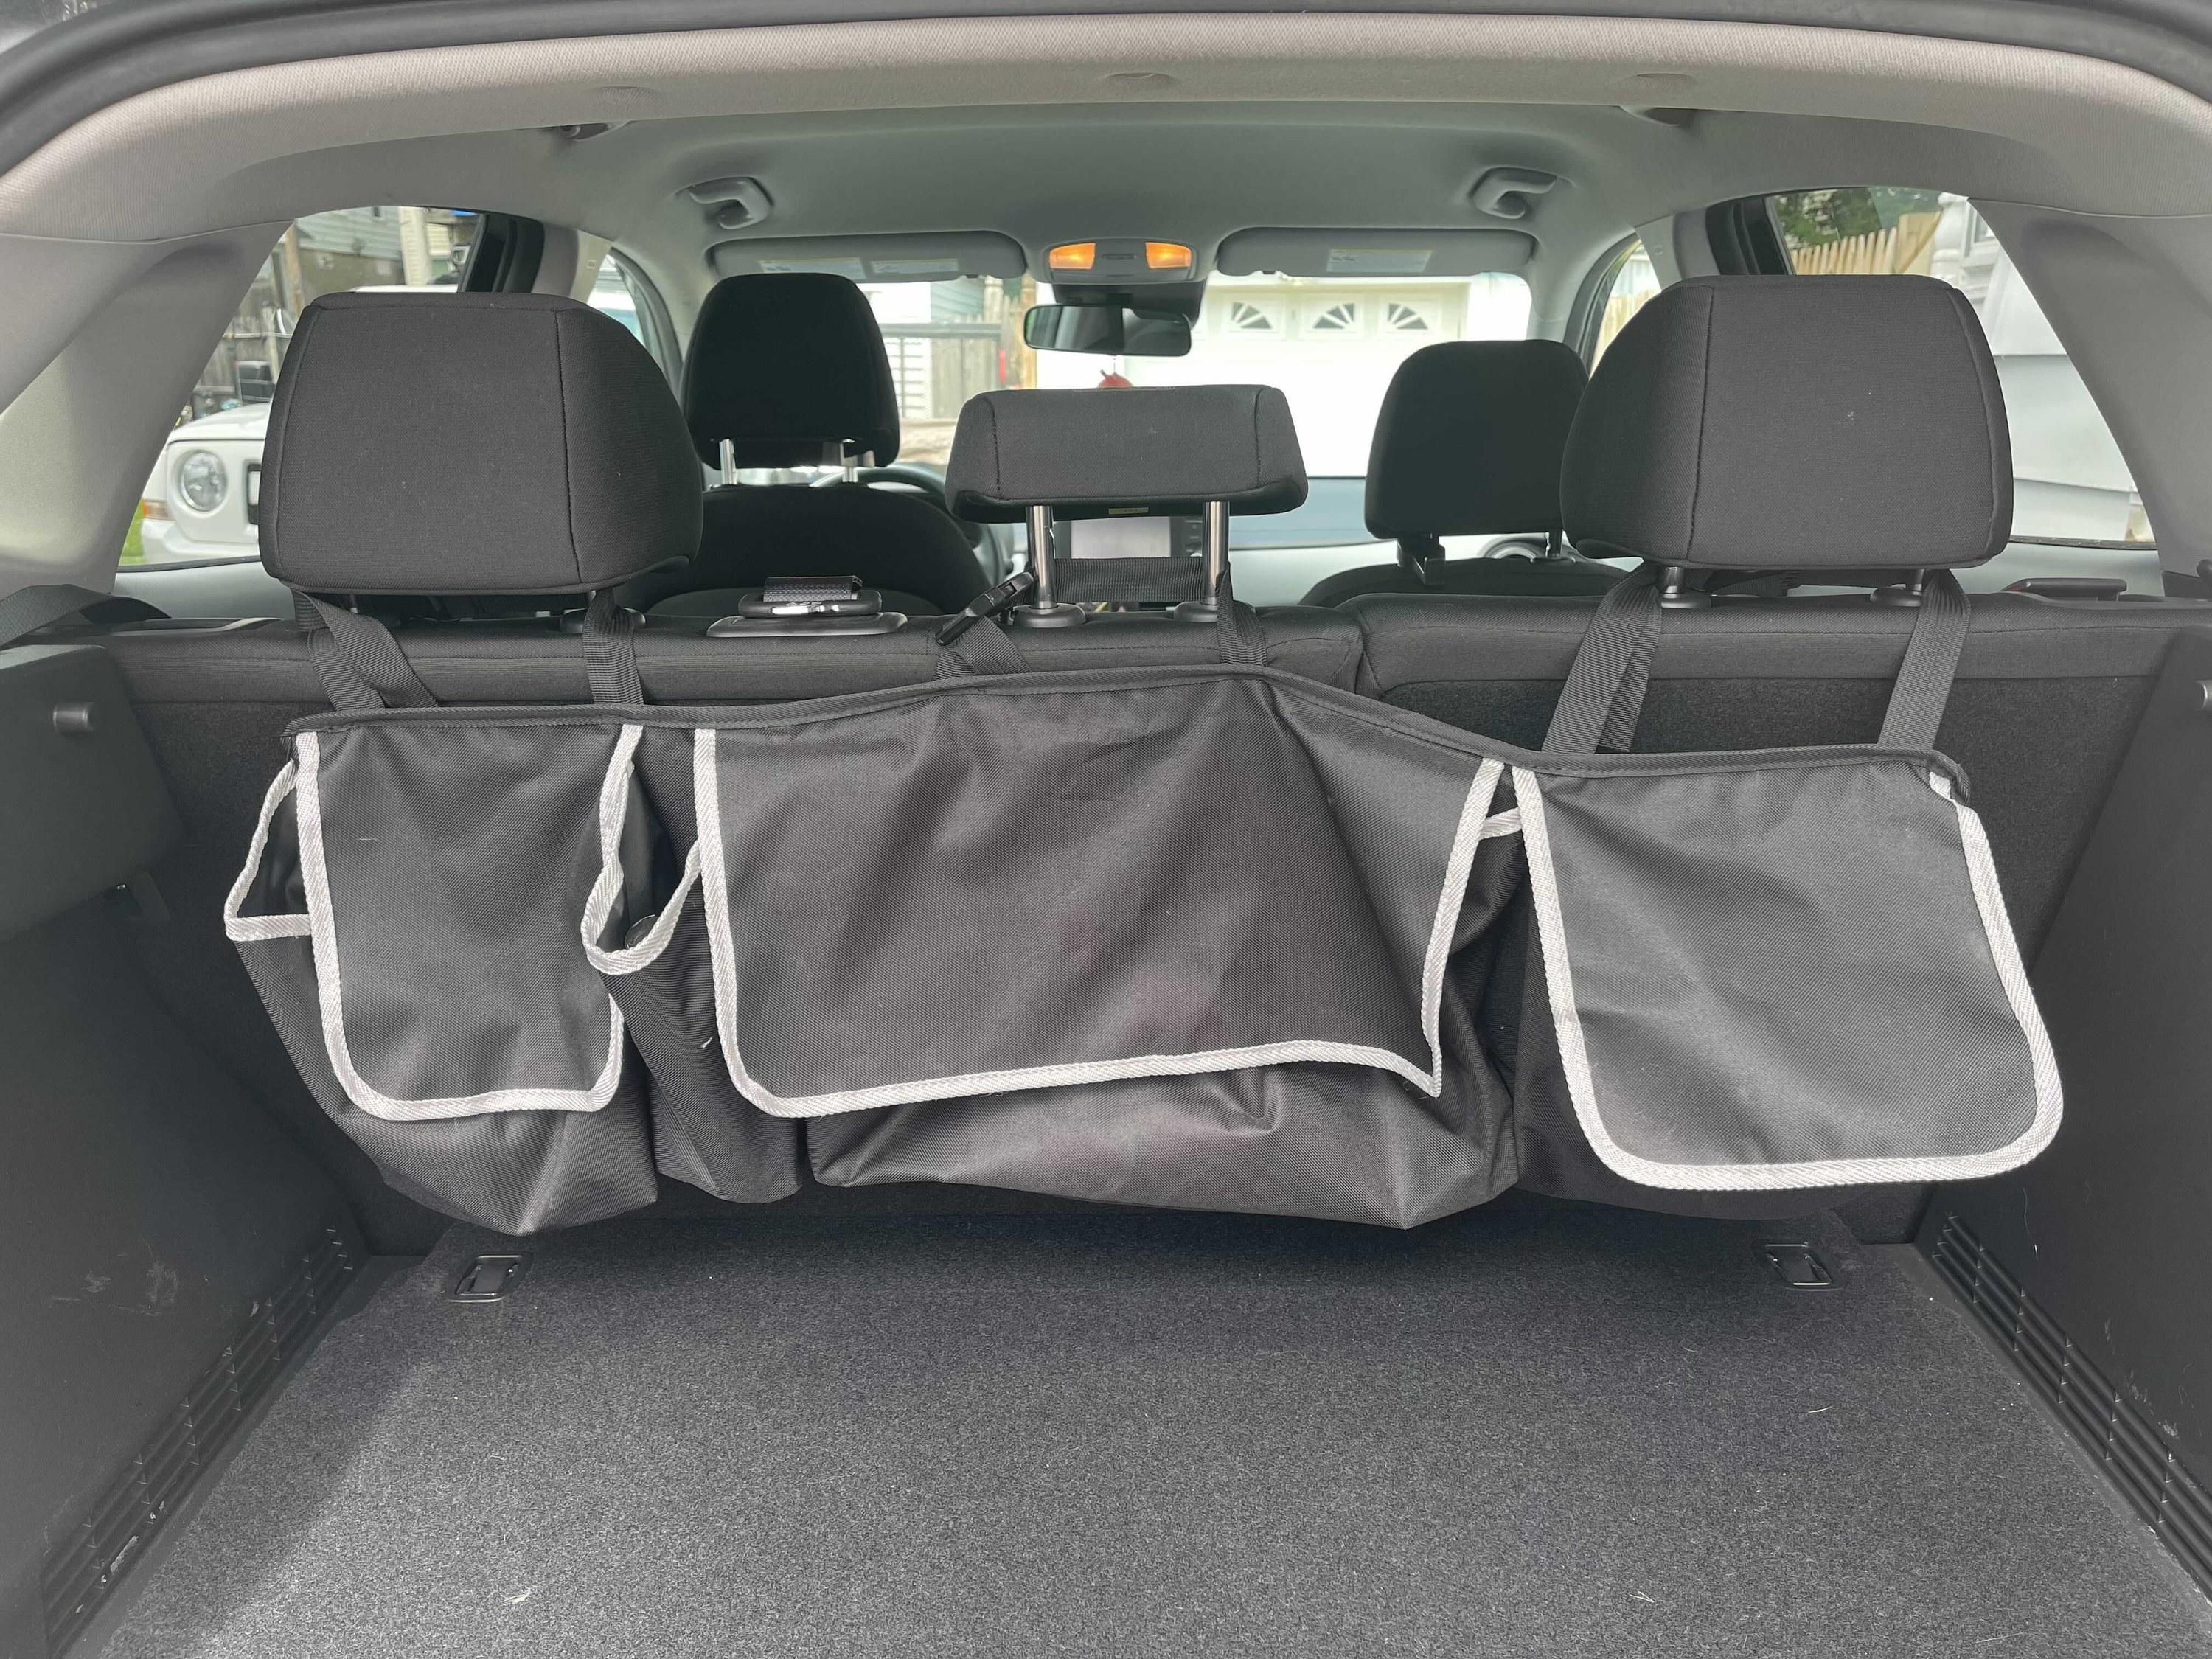 The organizer in the trunk of a car